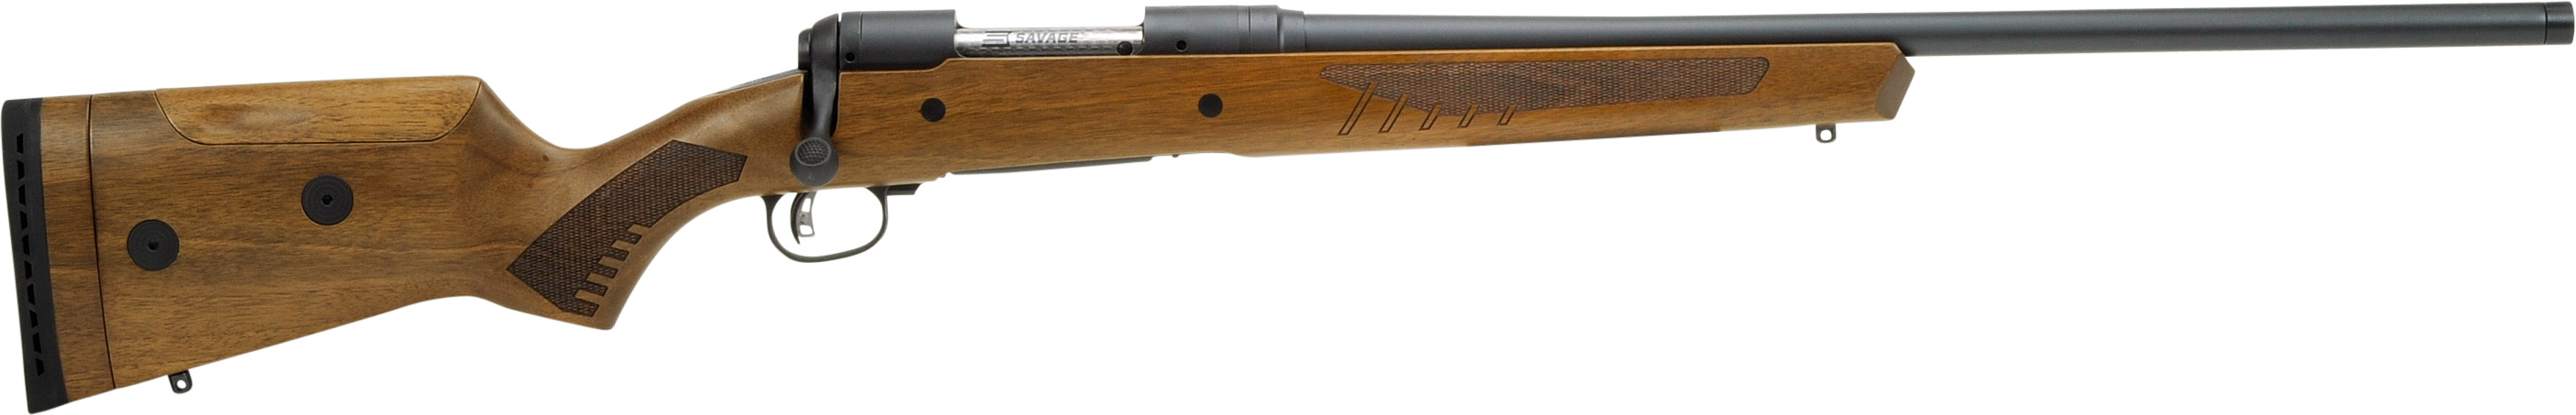 Savage Arms 110 Classic 300 Win Mag